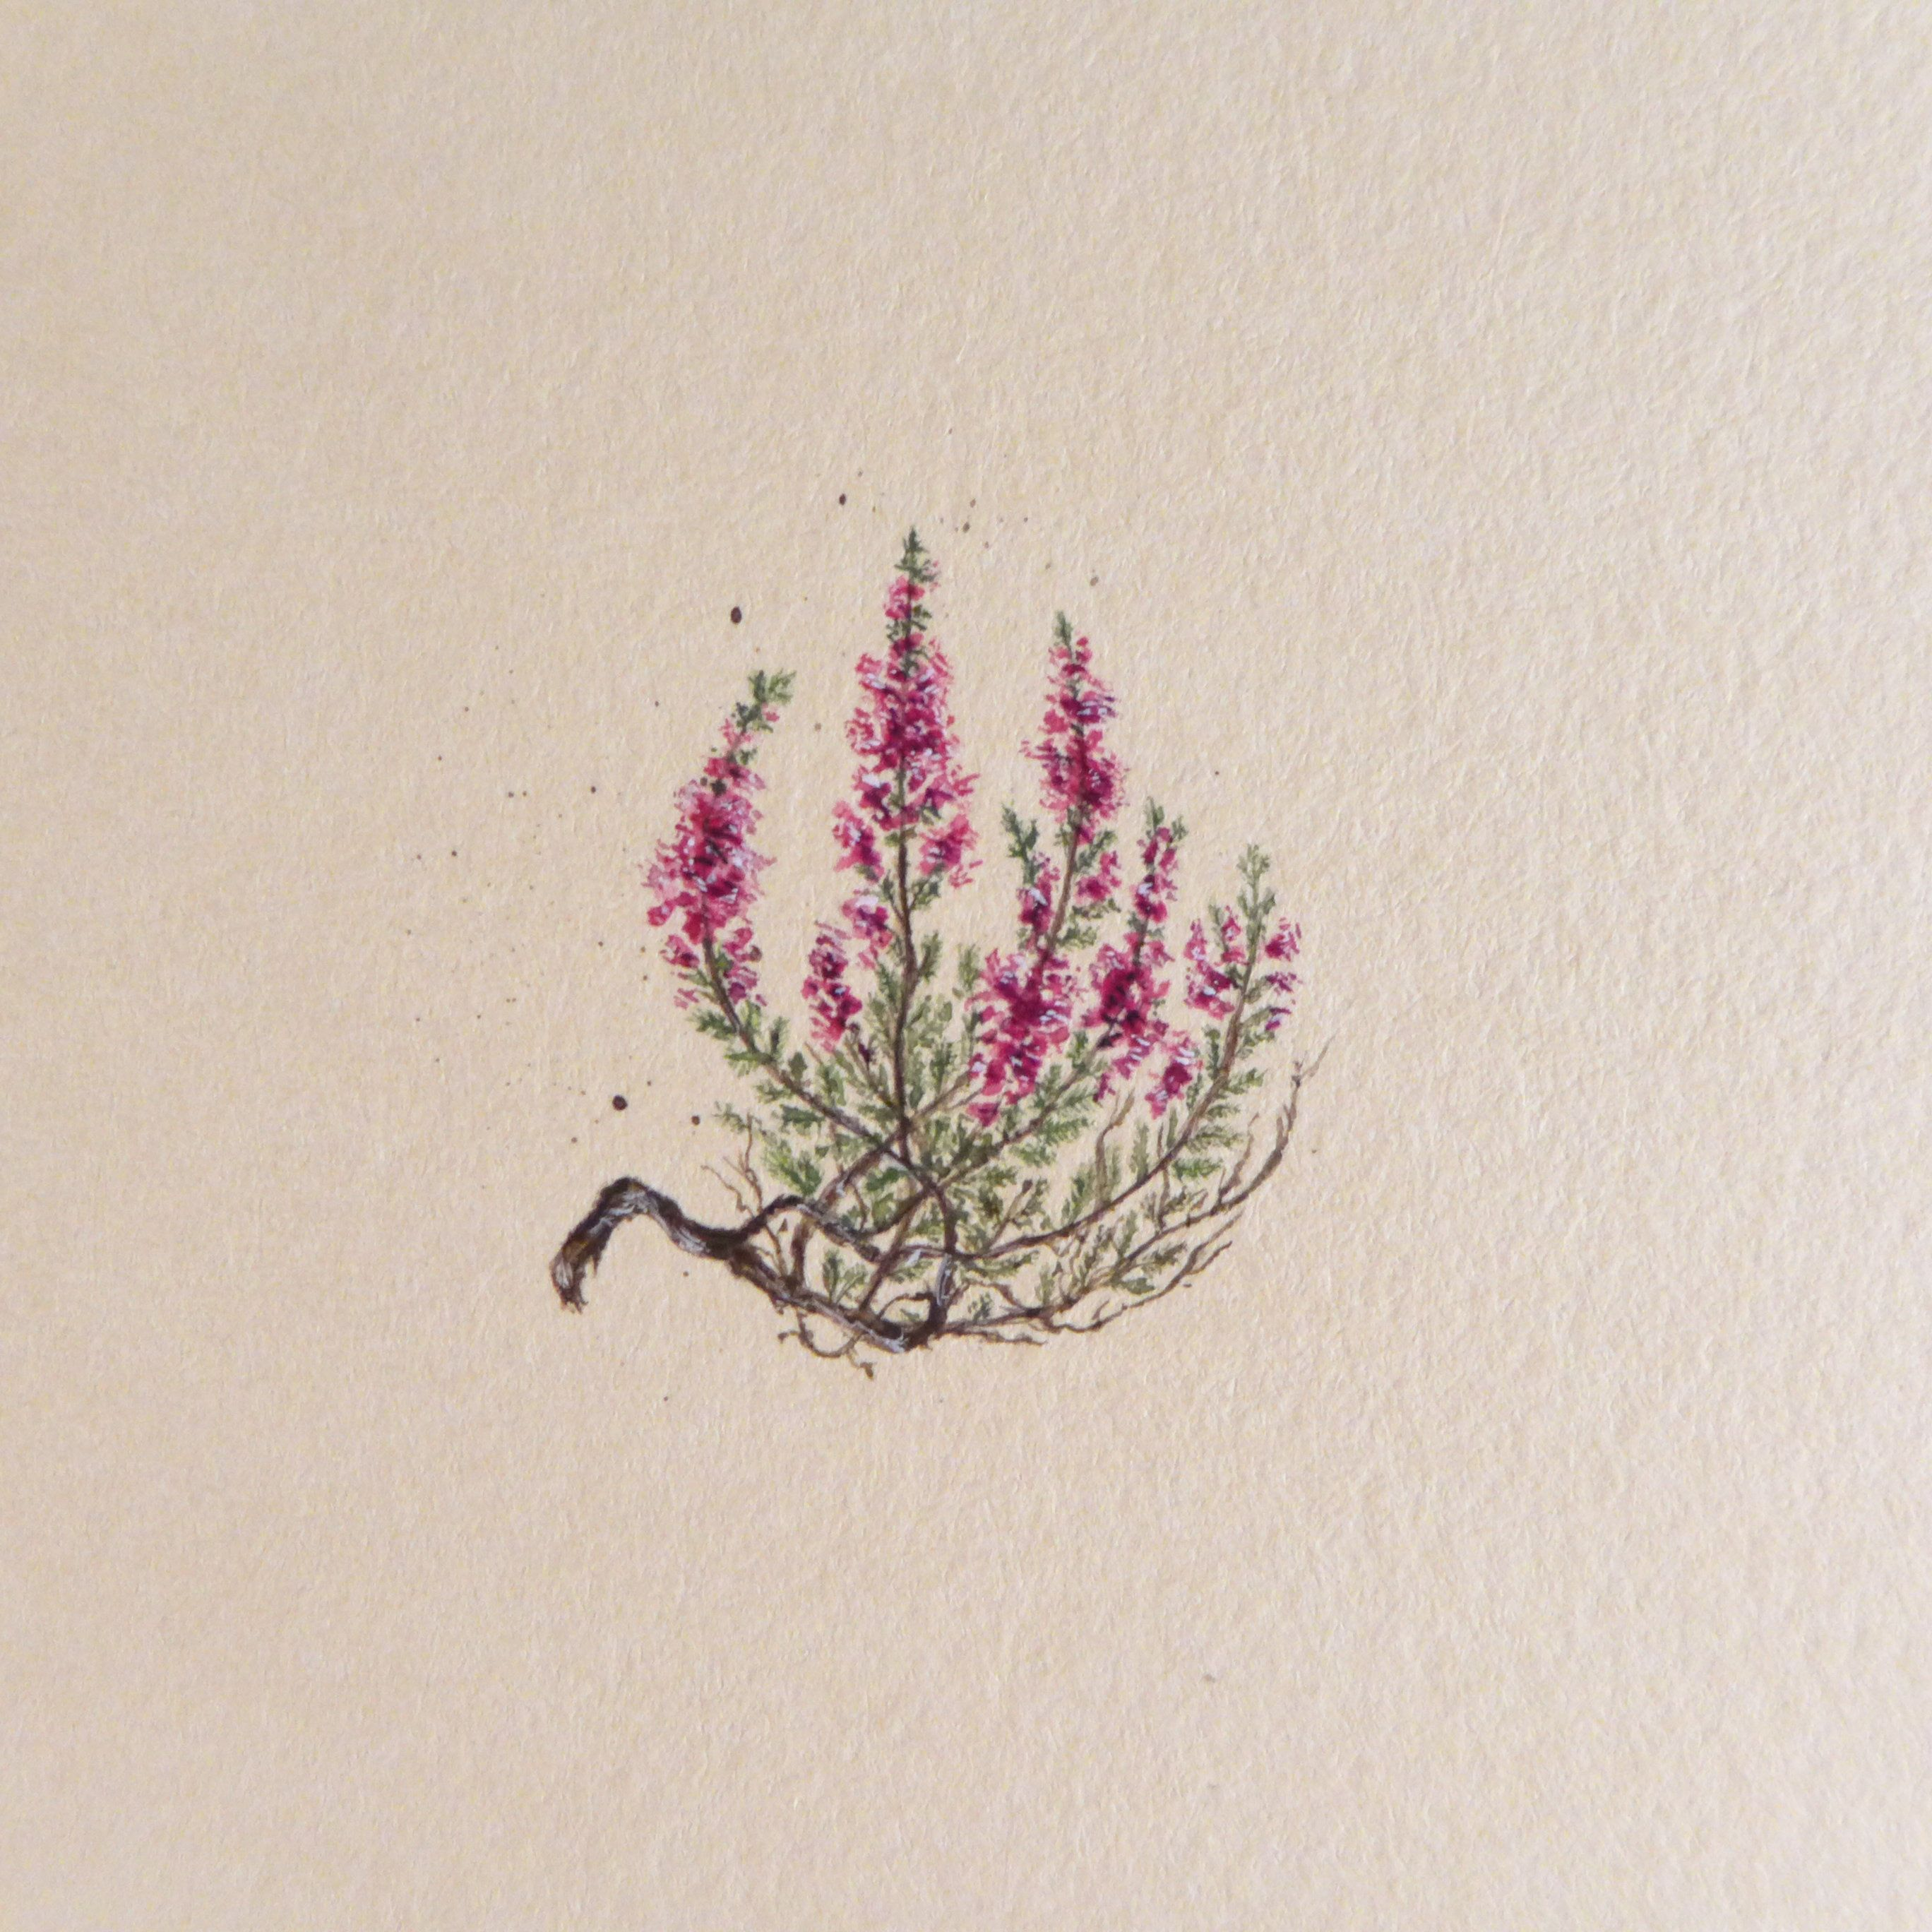 Vintage Heathers Botanical Illustration Miniature Make To Order Watercolor Gif Hand Painted Drawing Mini Painting Miniature Painting Botanical Illustration Heather Flower Miniature Painting